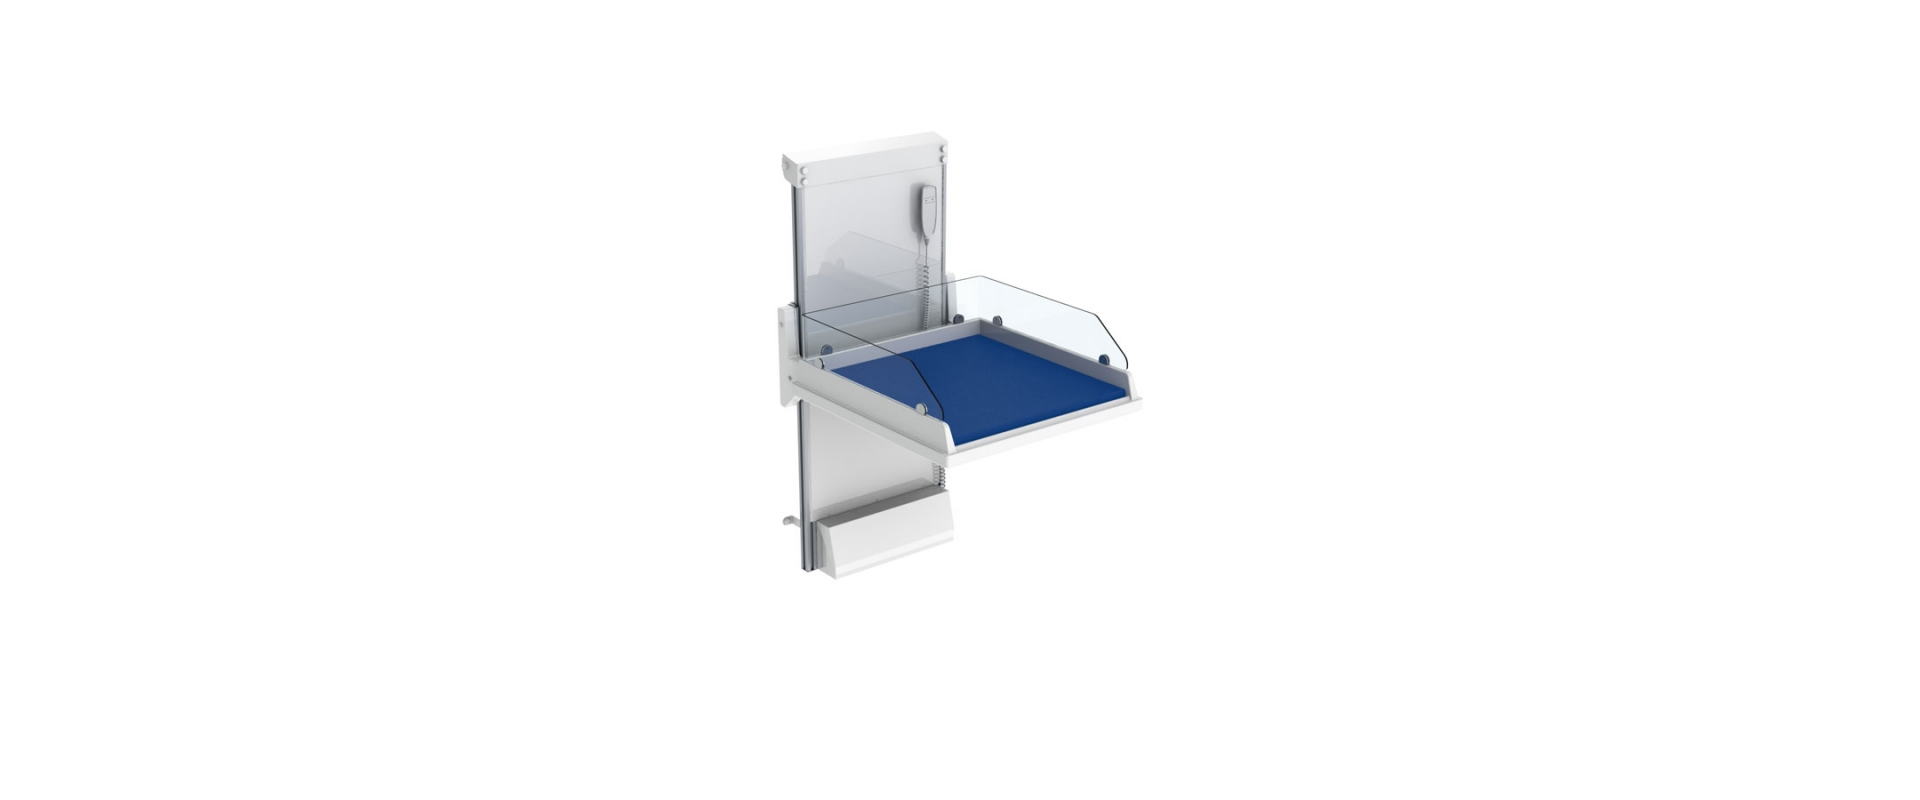 <b>Baby changing table 334 - Border height 20 cm</b>